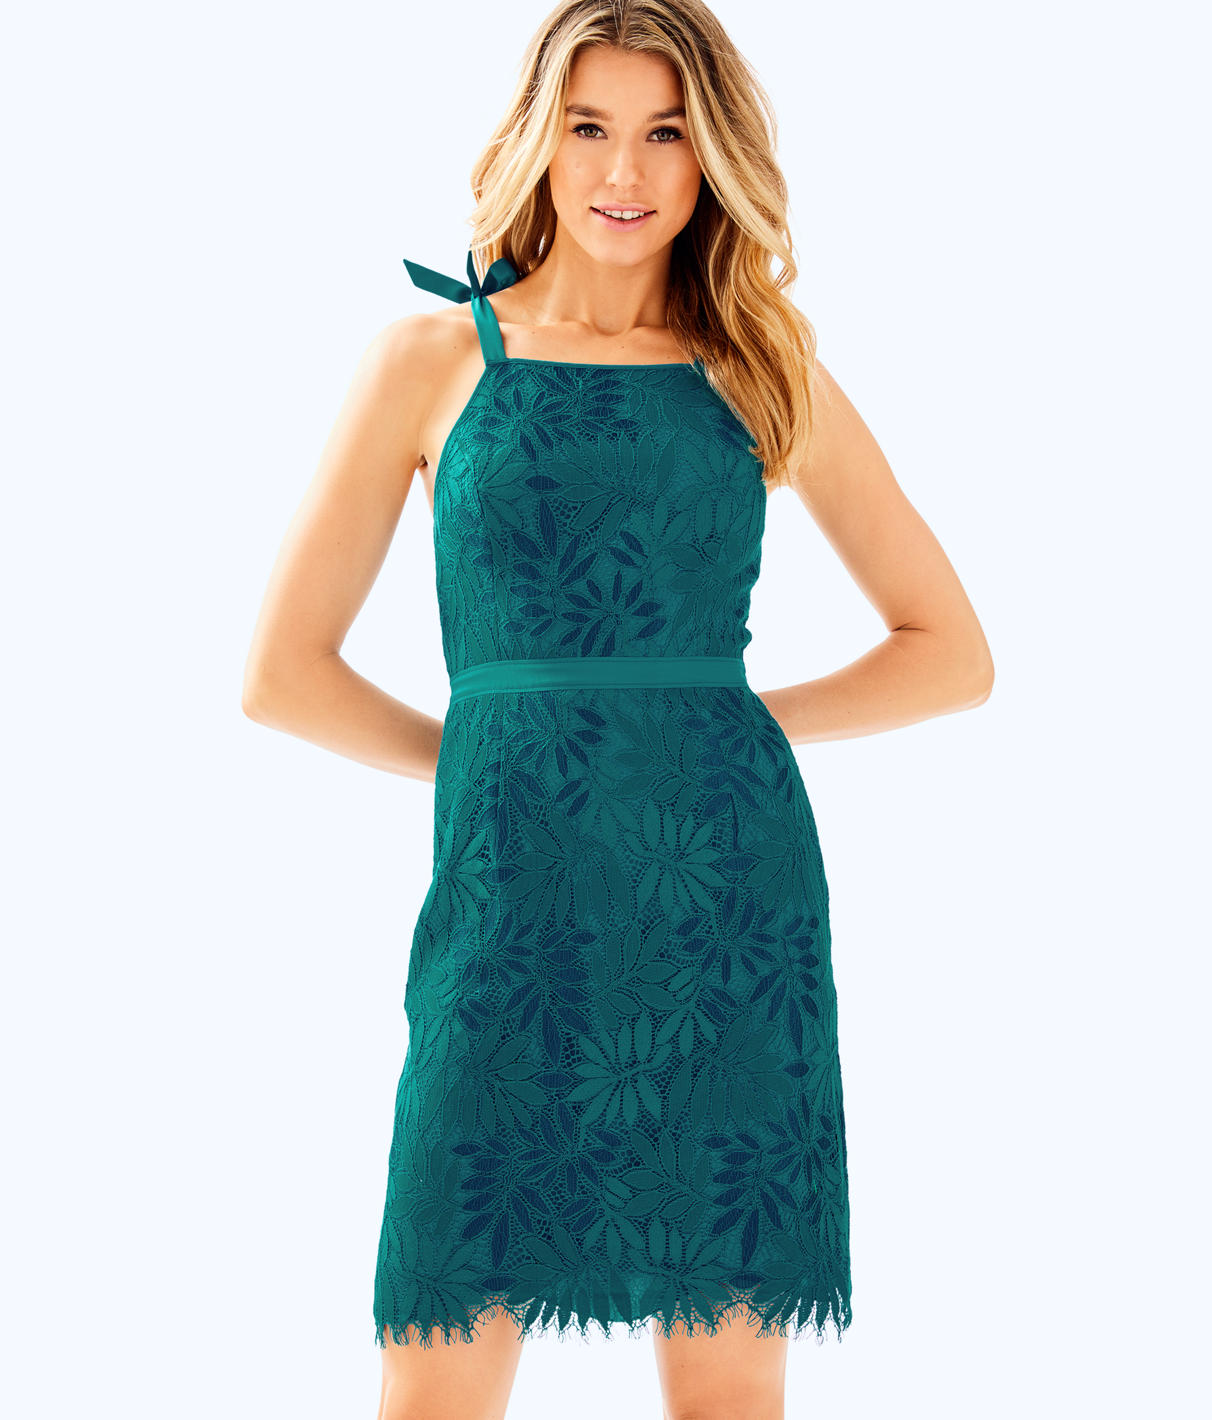 LILLY PULITZER Kayleigh Lace Sheath Dress in Tidal Wave Fern Gallery Lace